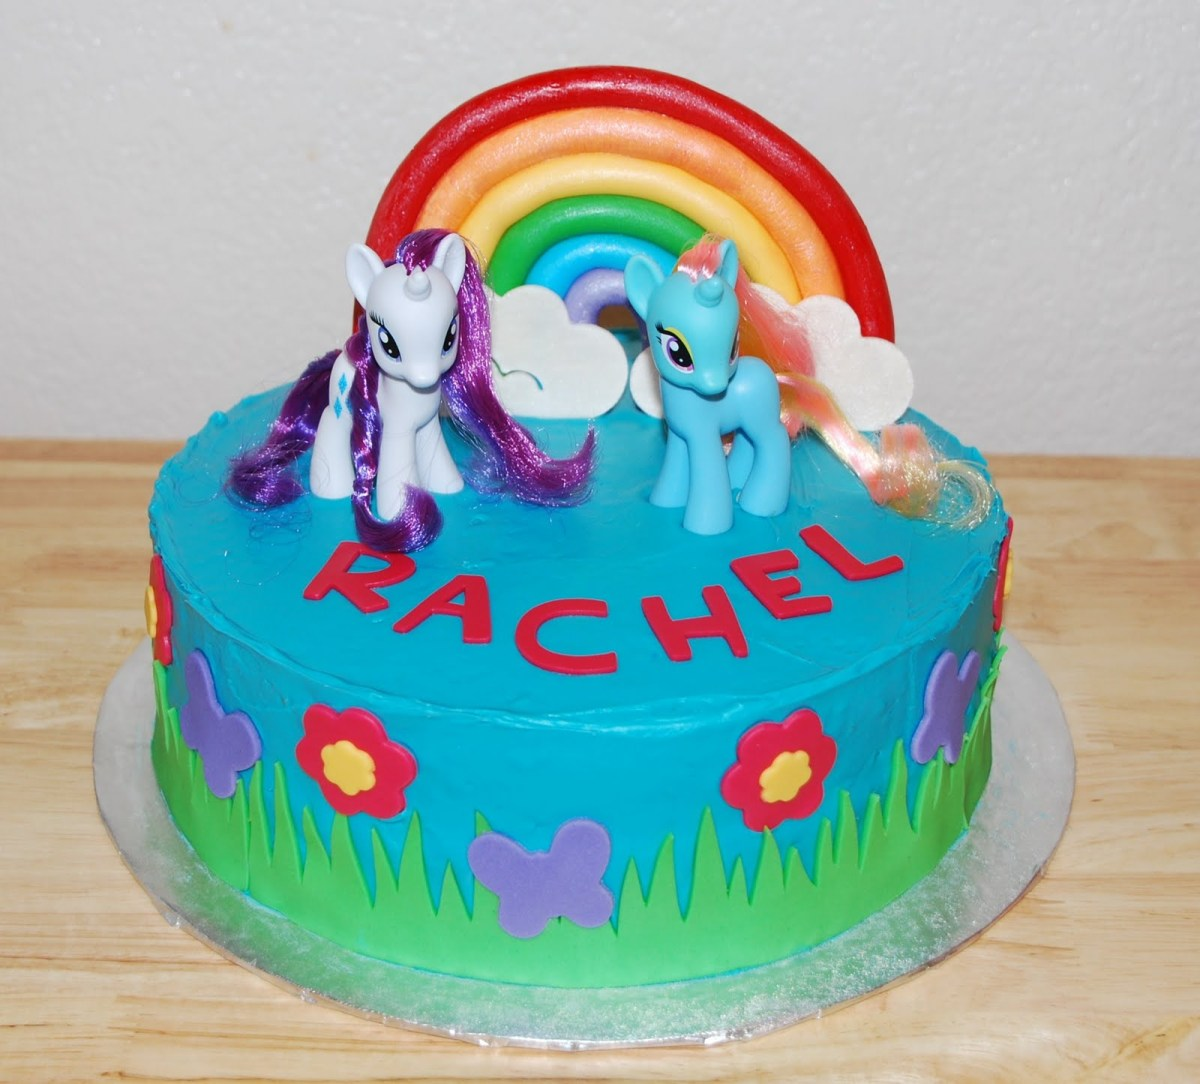 My Little Pony Birthday Cake.My Little Pony Birthday Cake Mlp Birthday Cakes Birijus Com